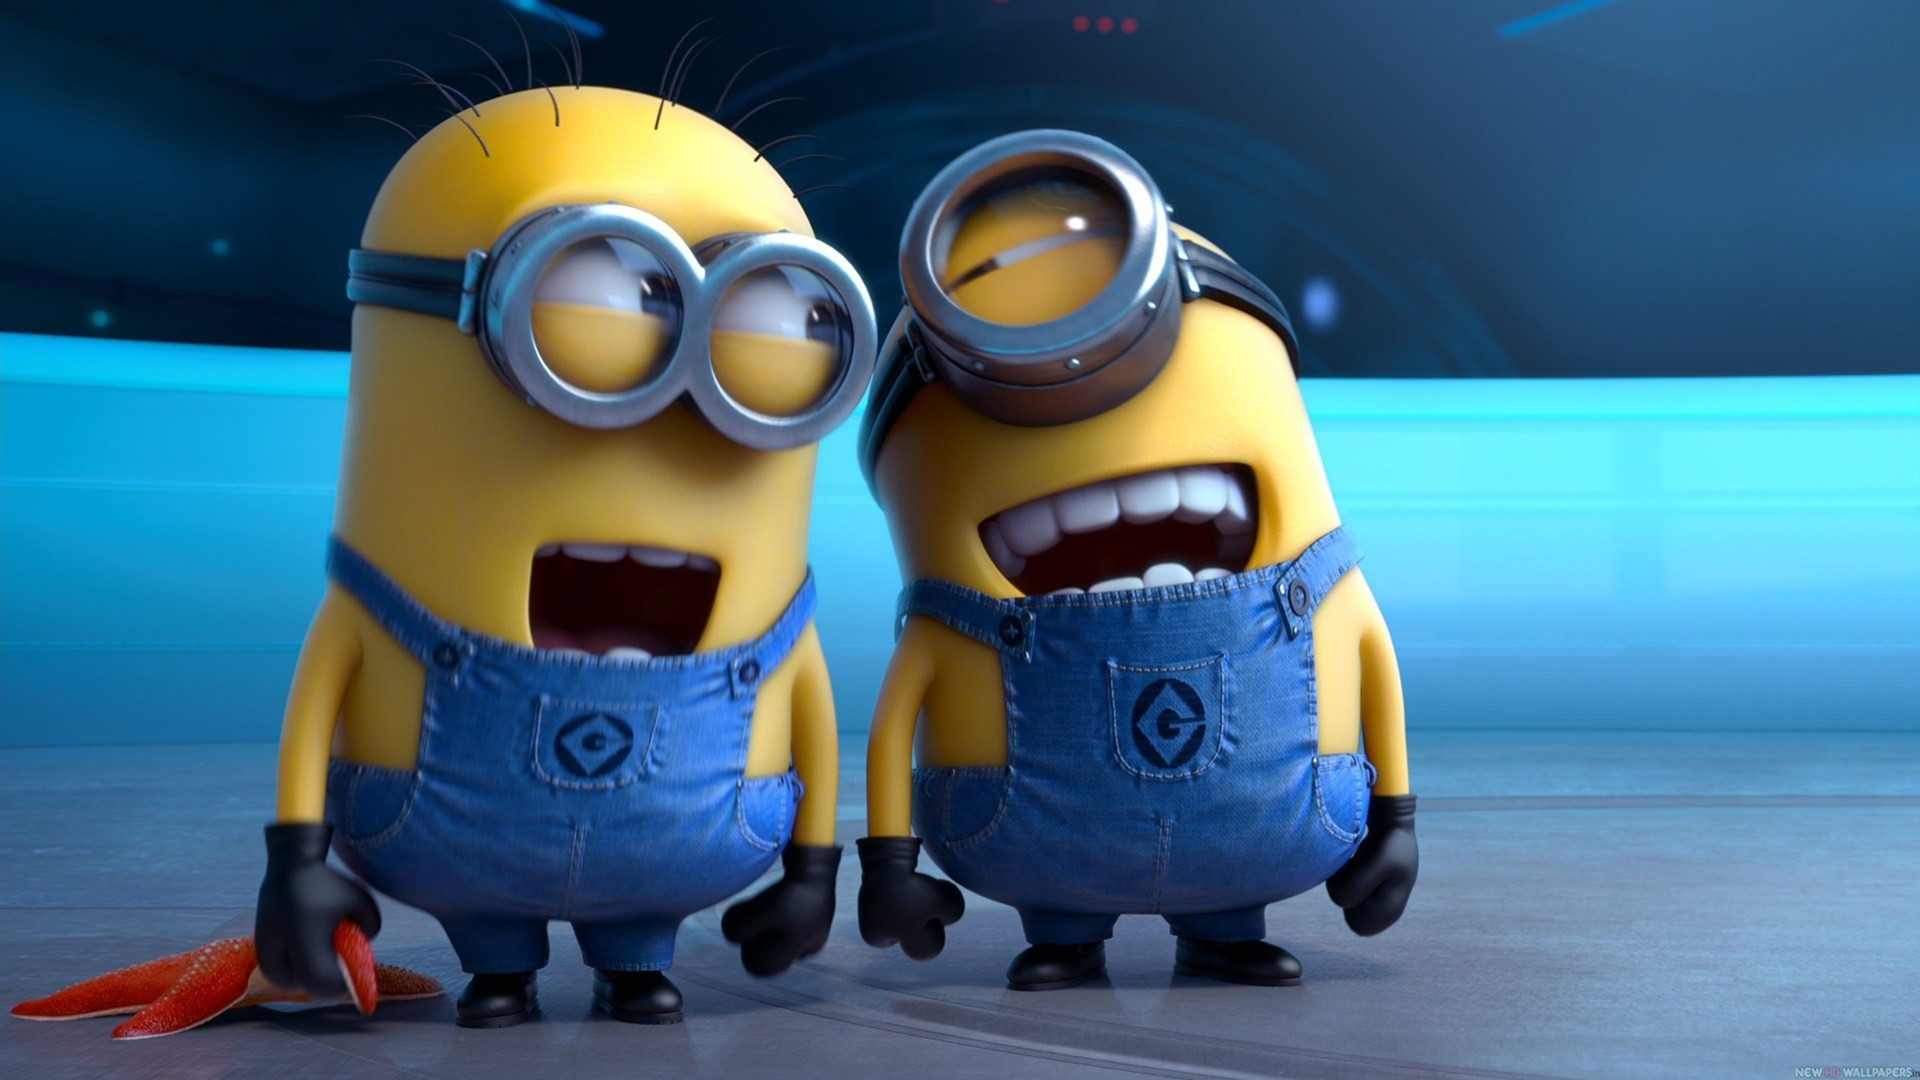 minion wallpaper 1920 x 1080 (71+ images)